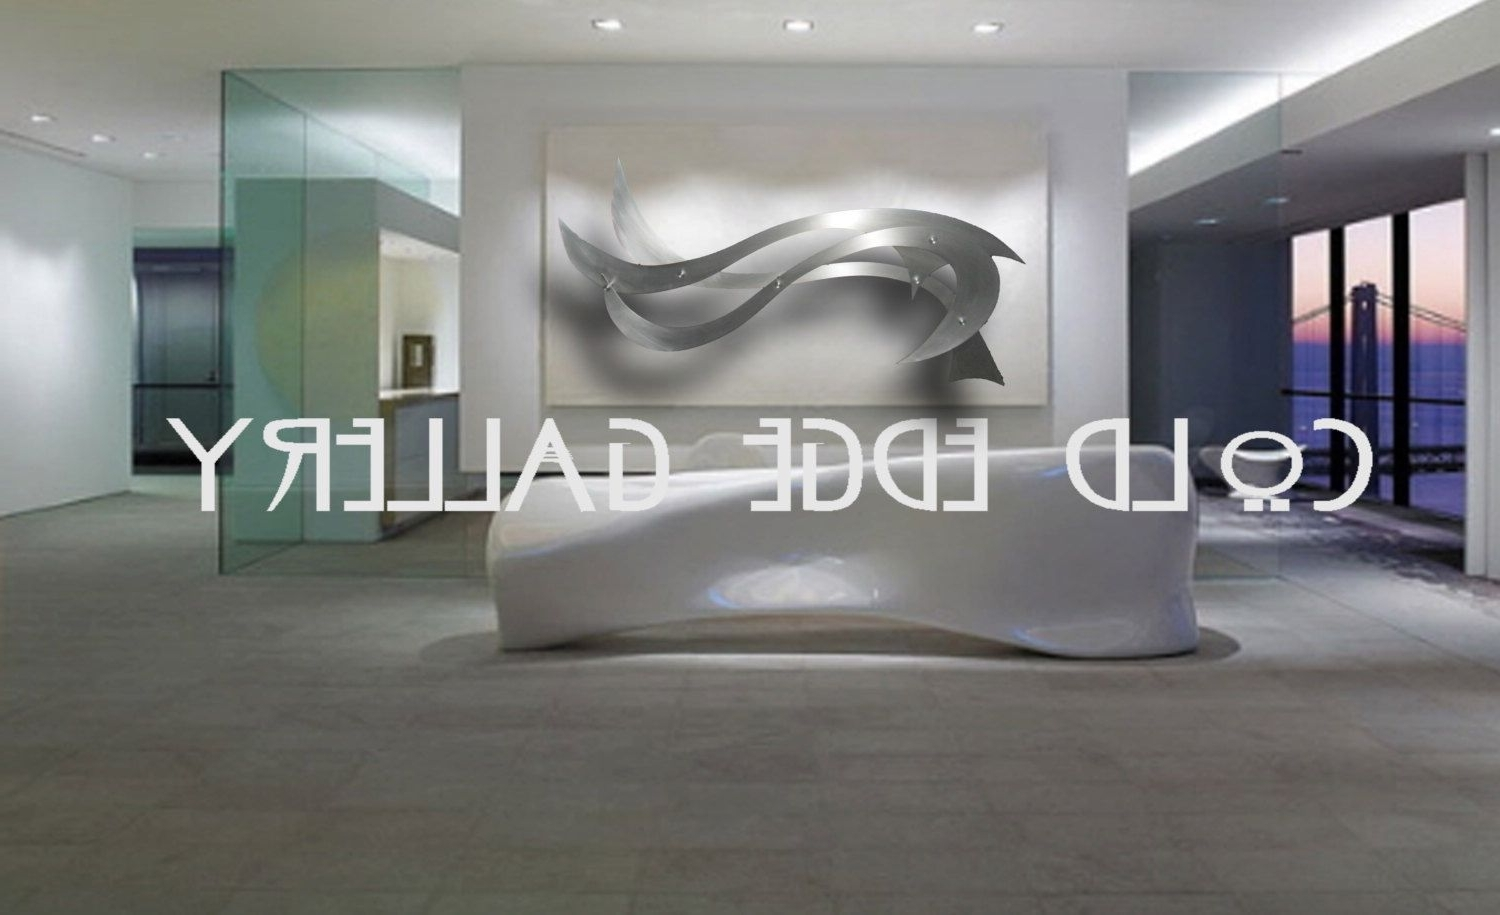 Widely Used Extra Large Wall Art Intended For Extra Large Wall Art, Corporate Wall Art, Extra Large Wall Sculpture (View 6 of 15)